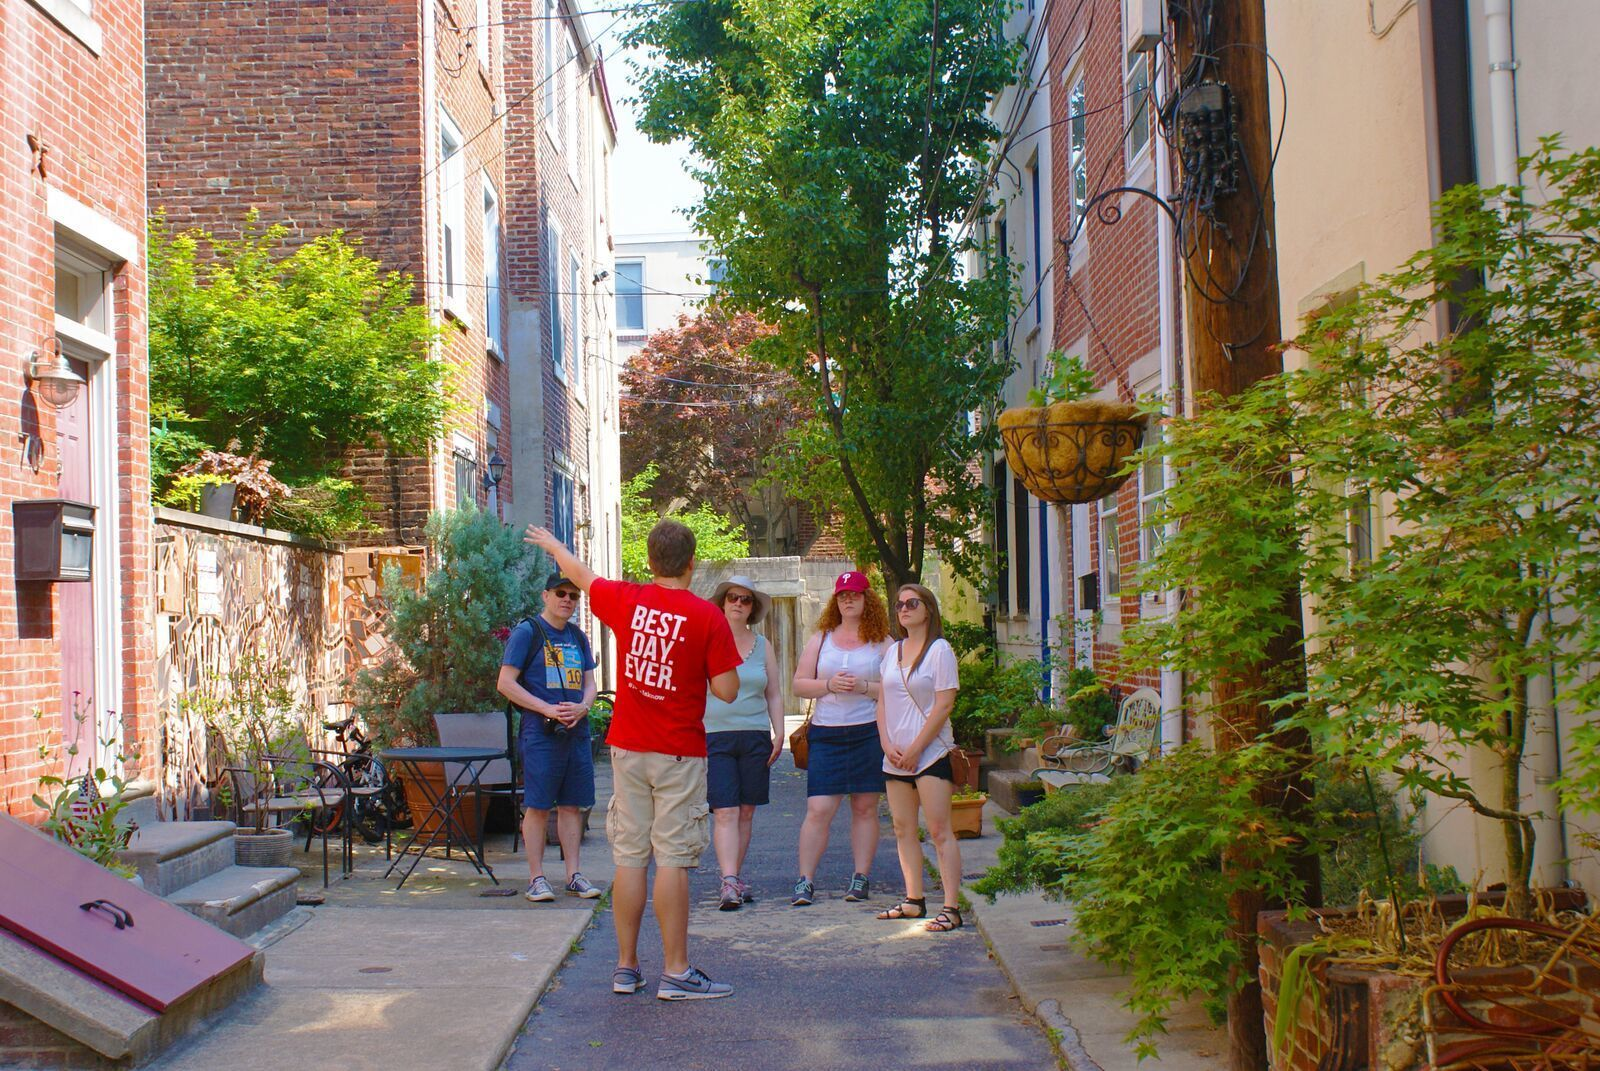 Tour guide with group in Philadelphia